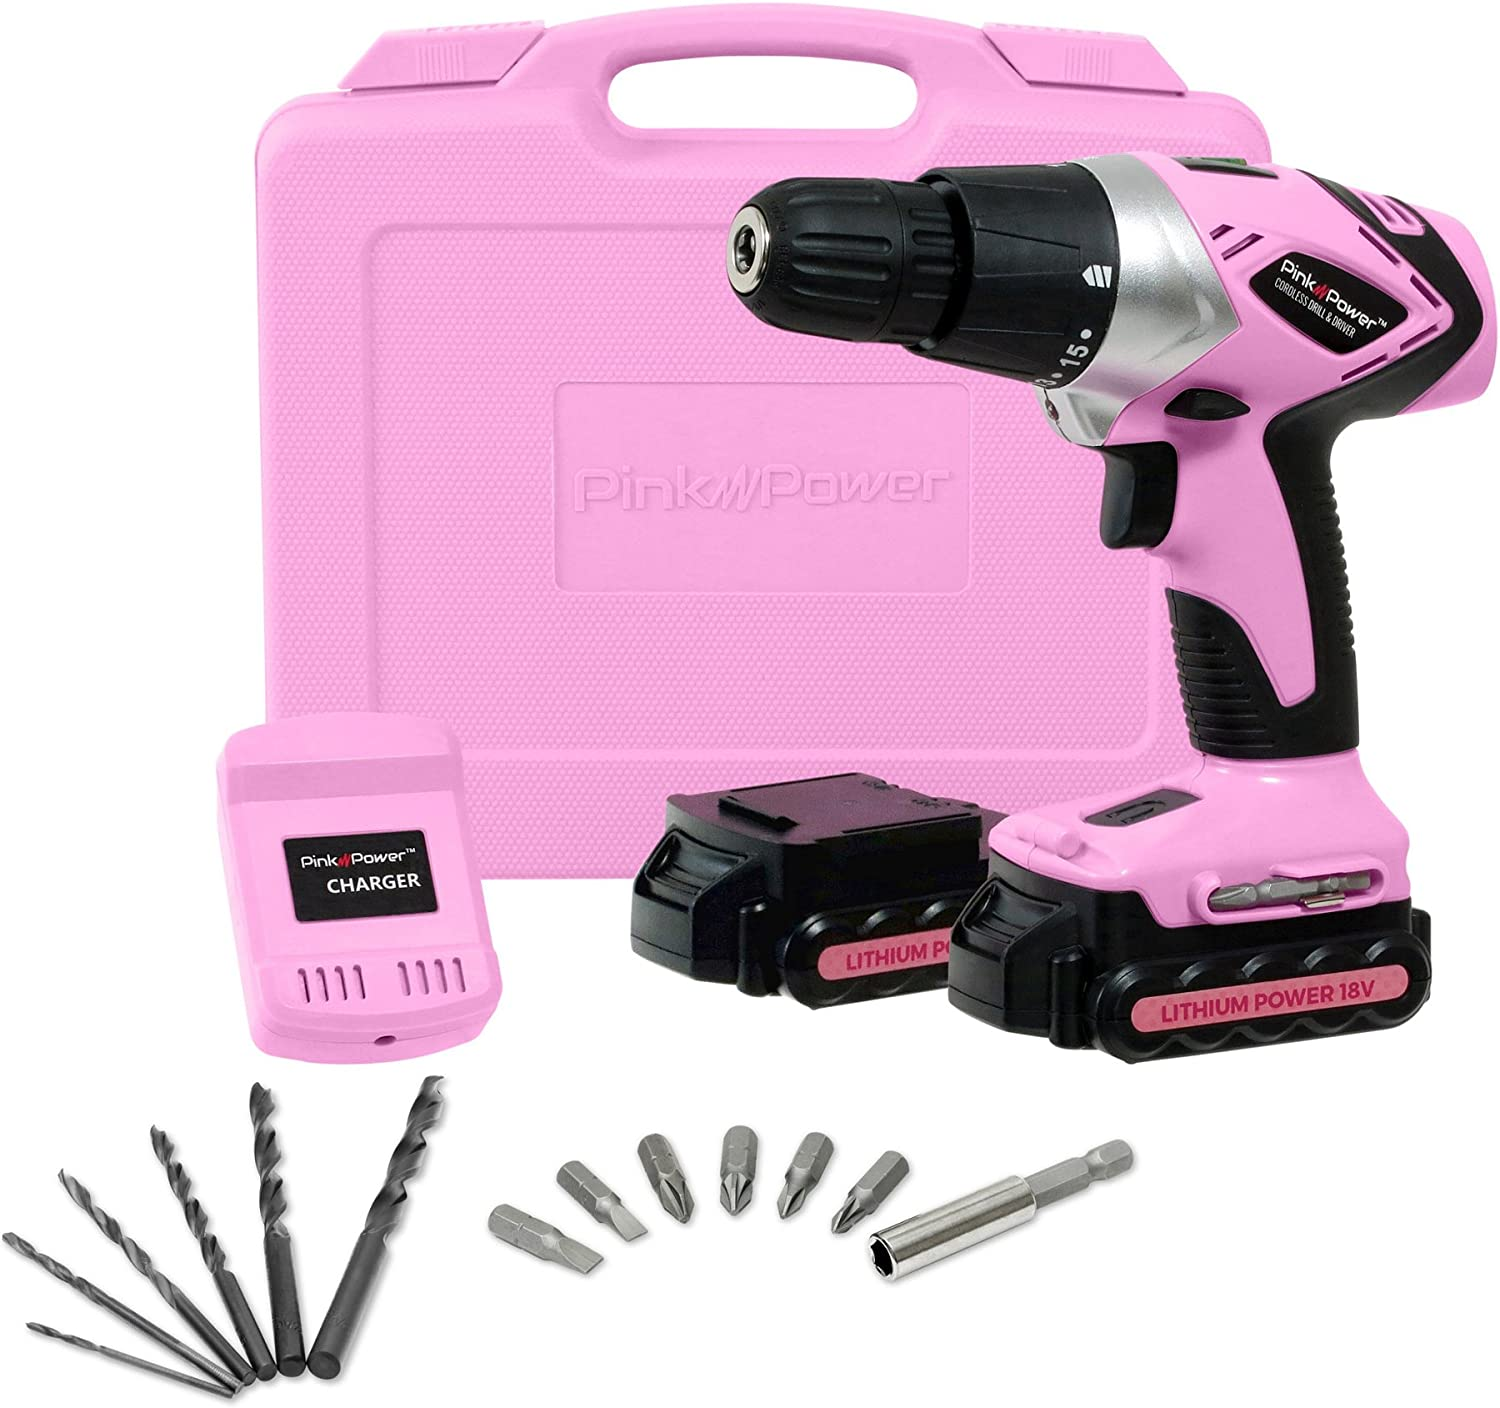 Pink Power PP182LI 18 Volt Lithium-Ion Cordless Electric Drill Driver Kit for Women- Tool Case, Drill Set, 2 Batteries Charger